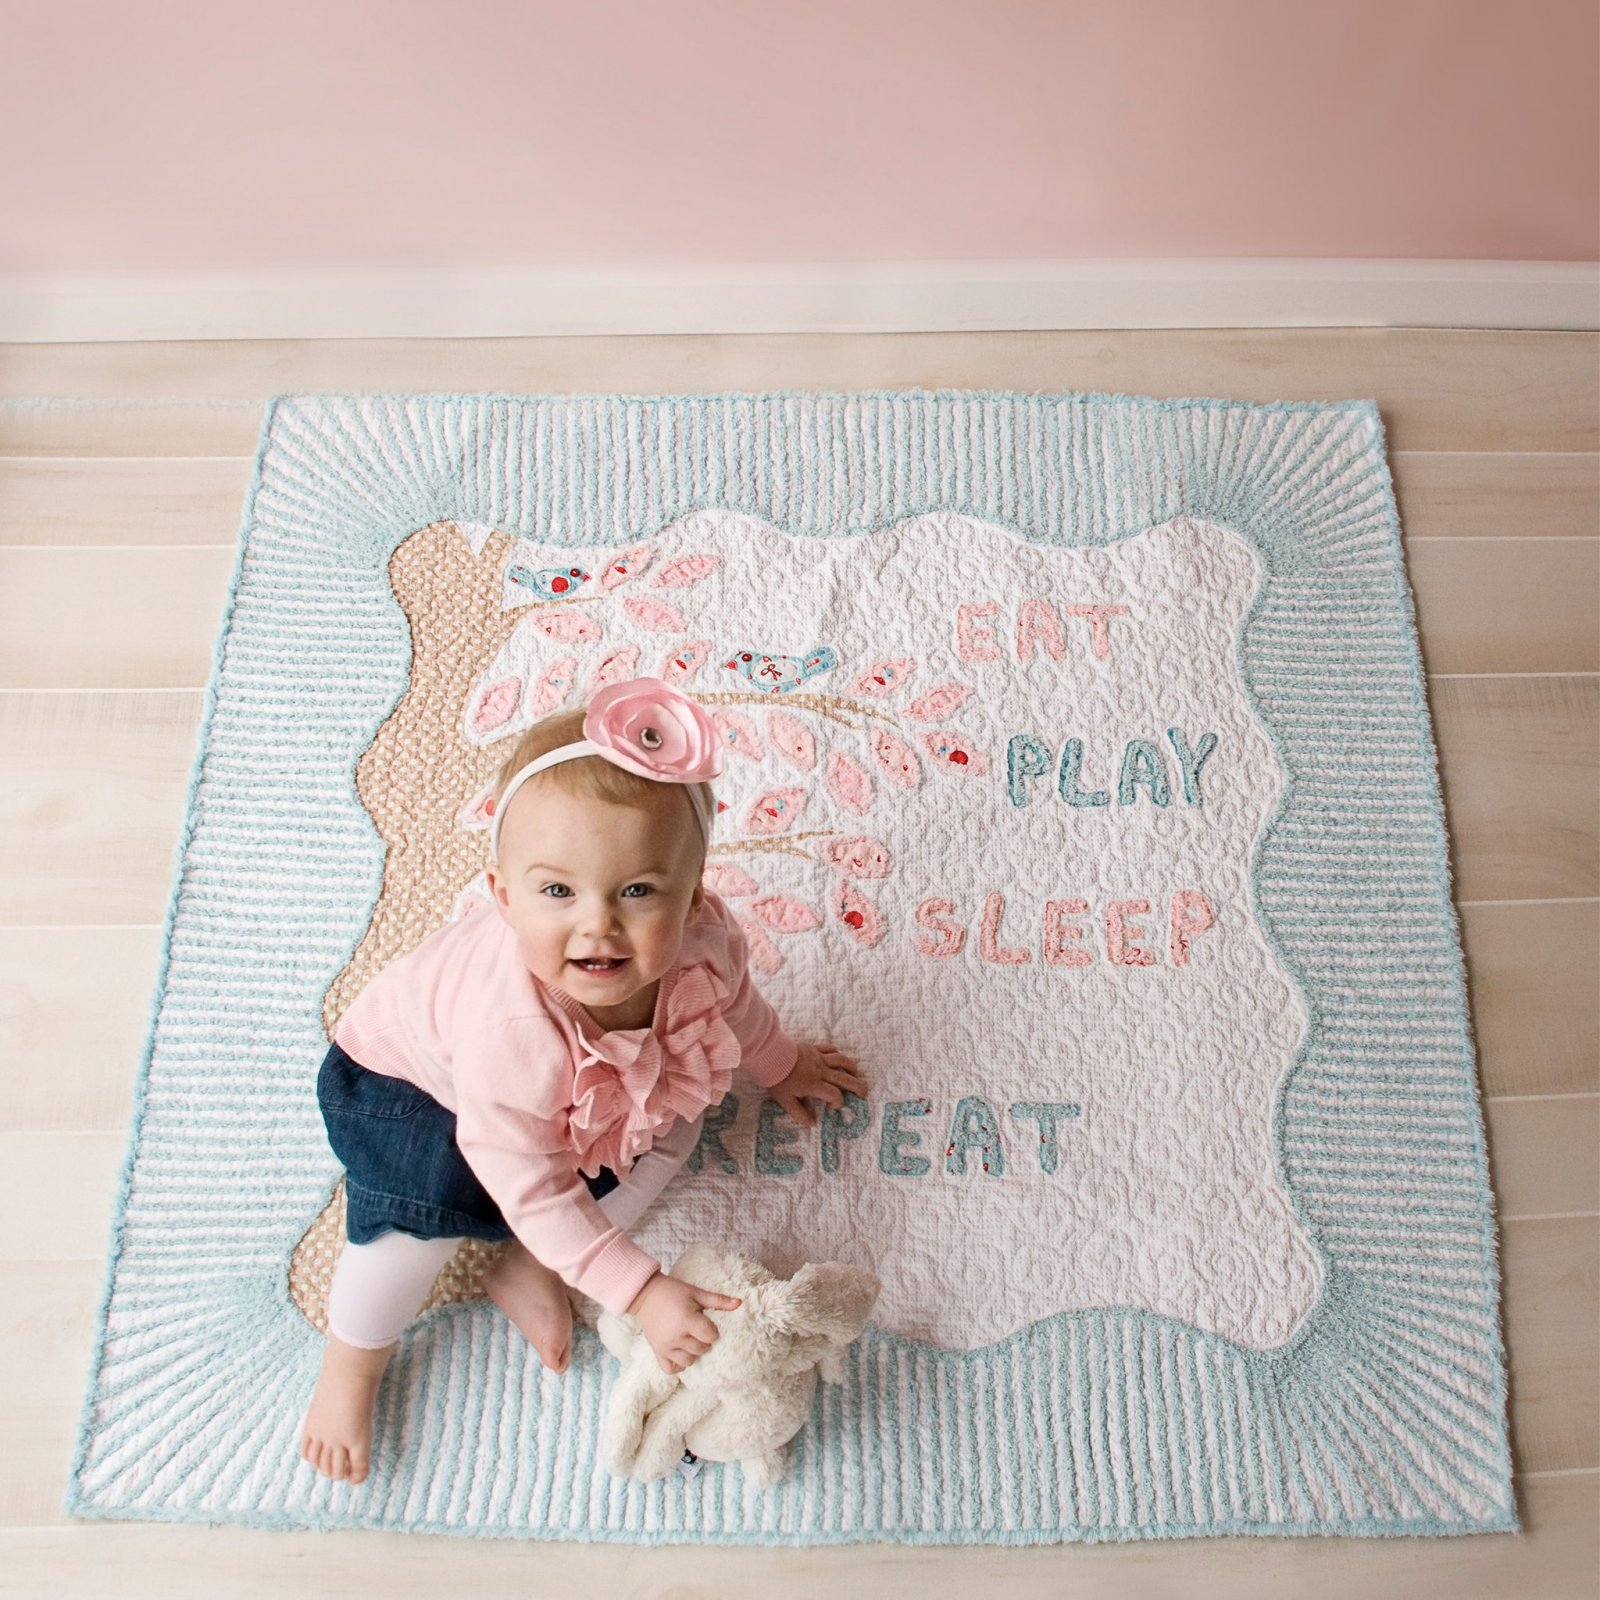 Eat, Play, Sleep, Repeat Quilt Pattern